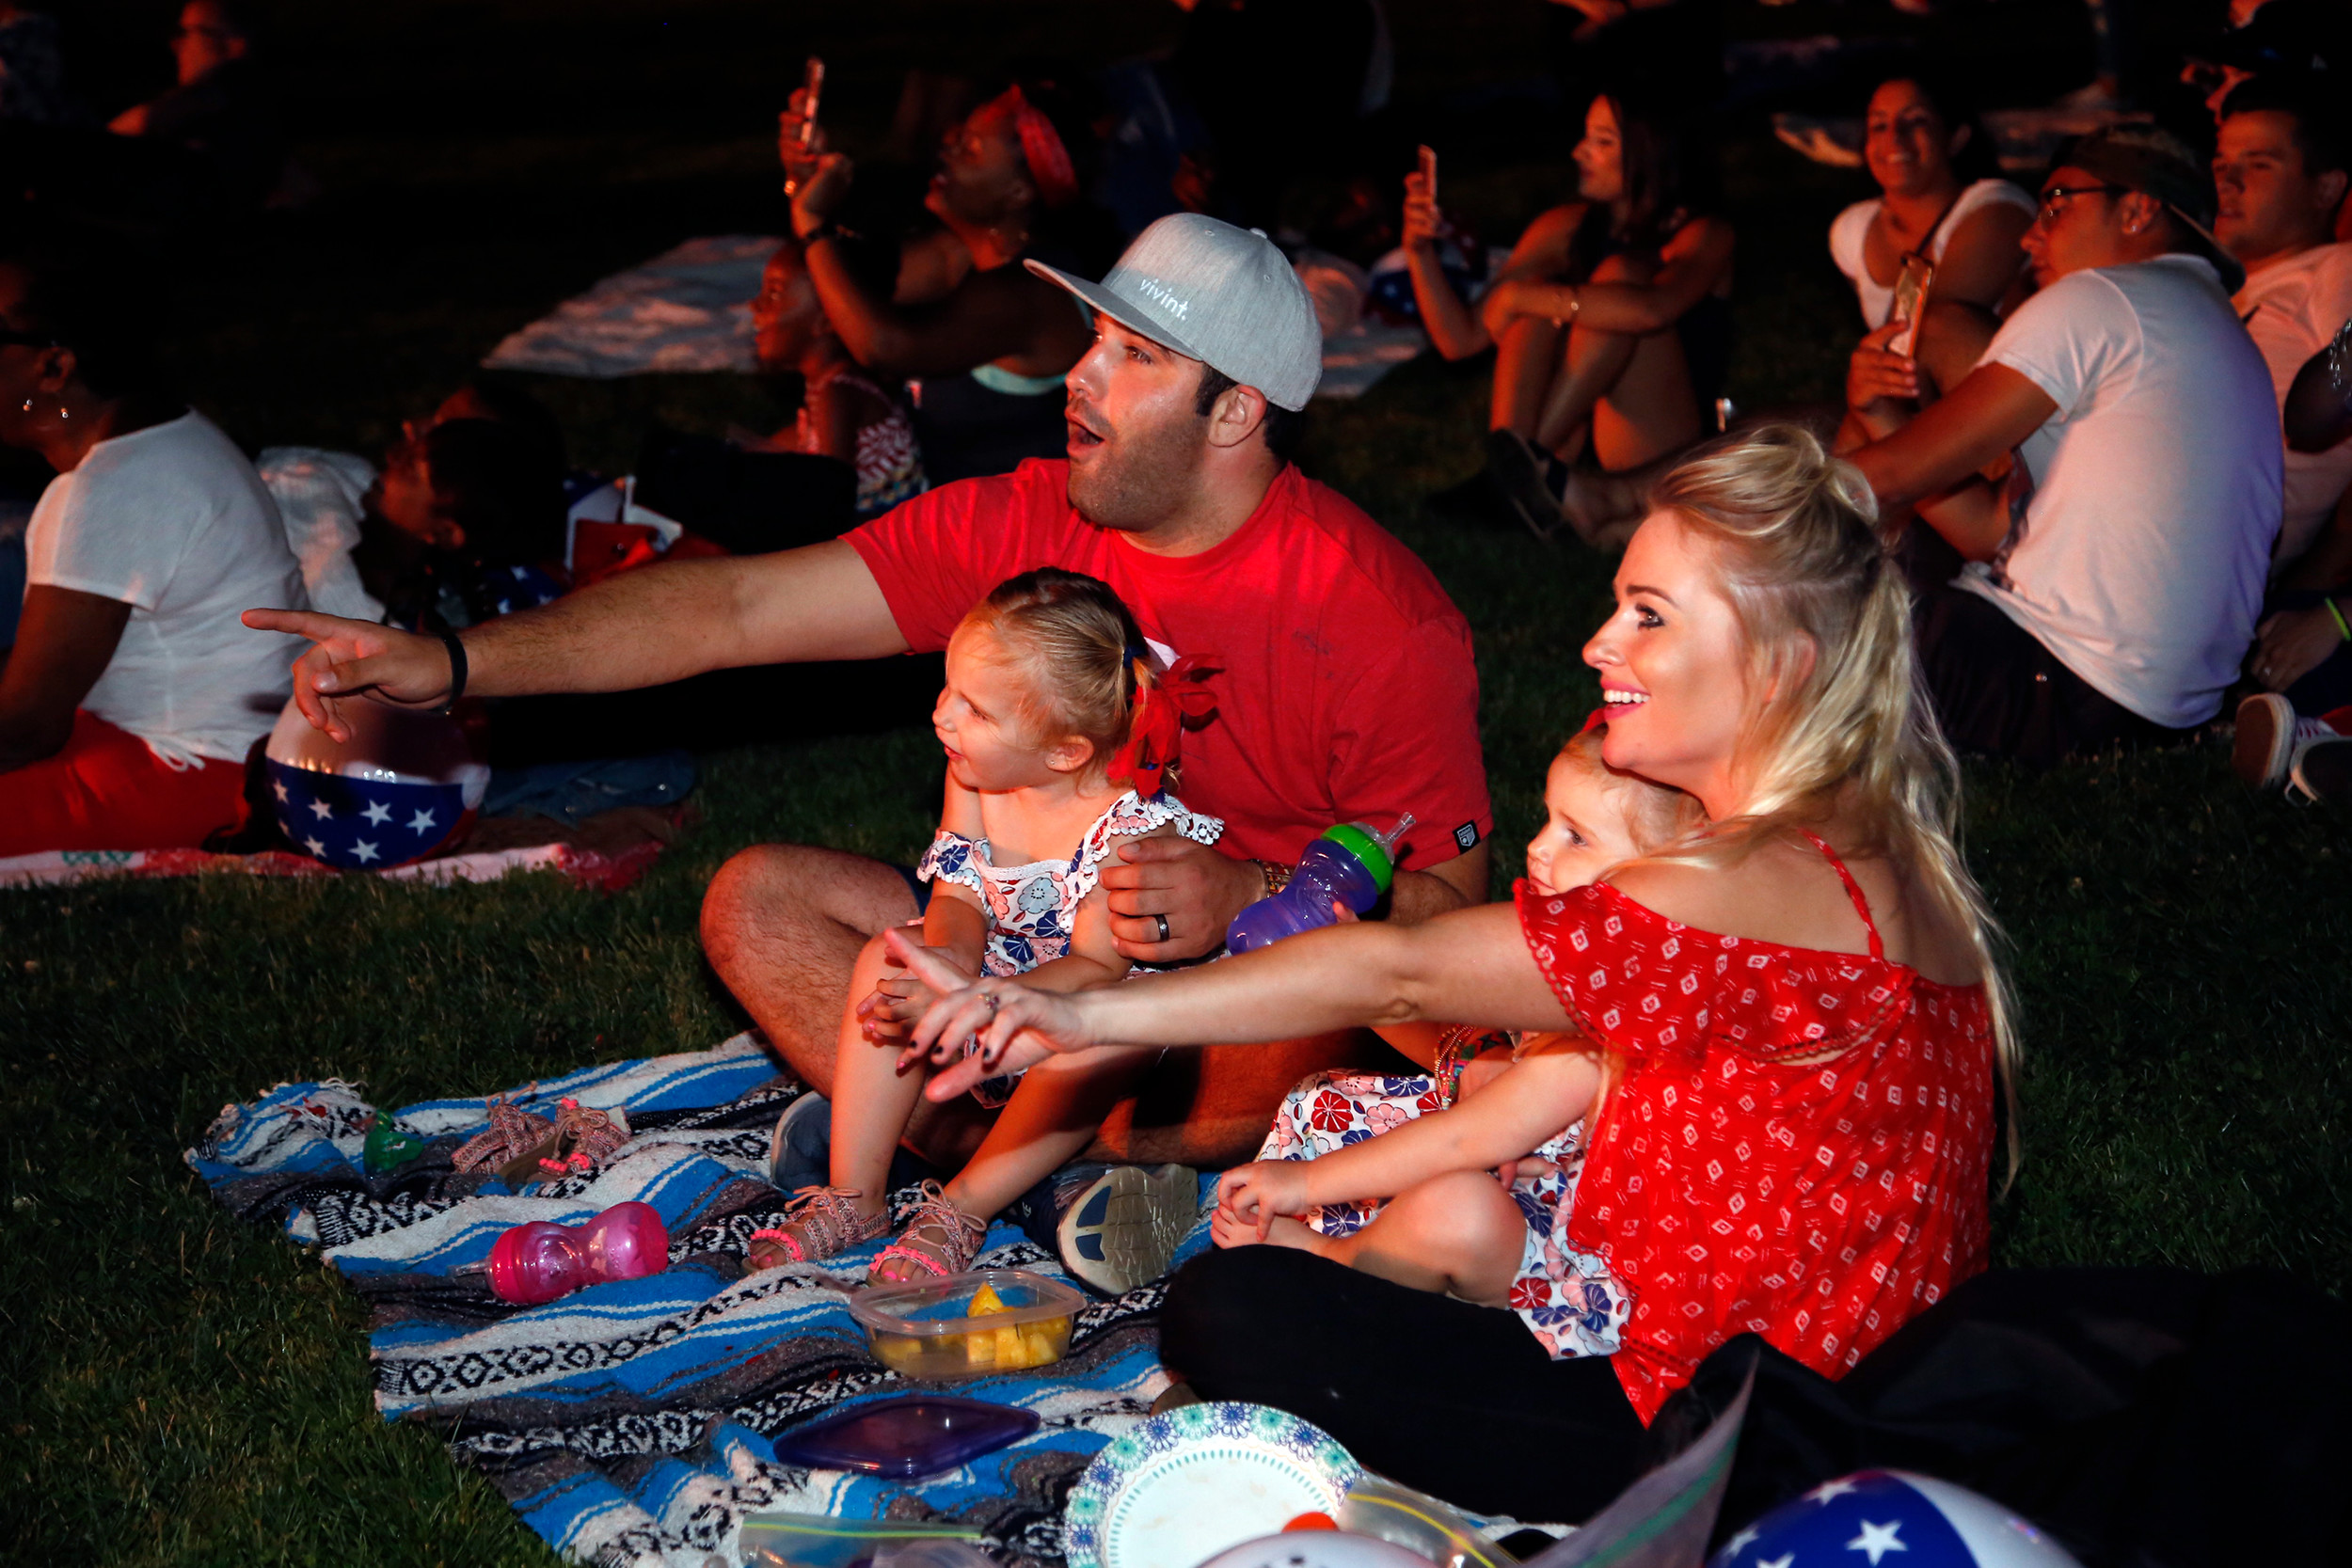 The Welch family watched as the fireworks show begins.